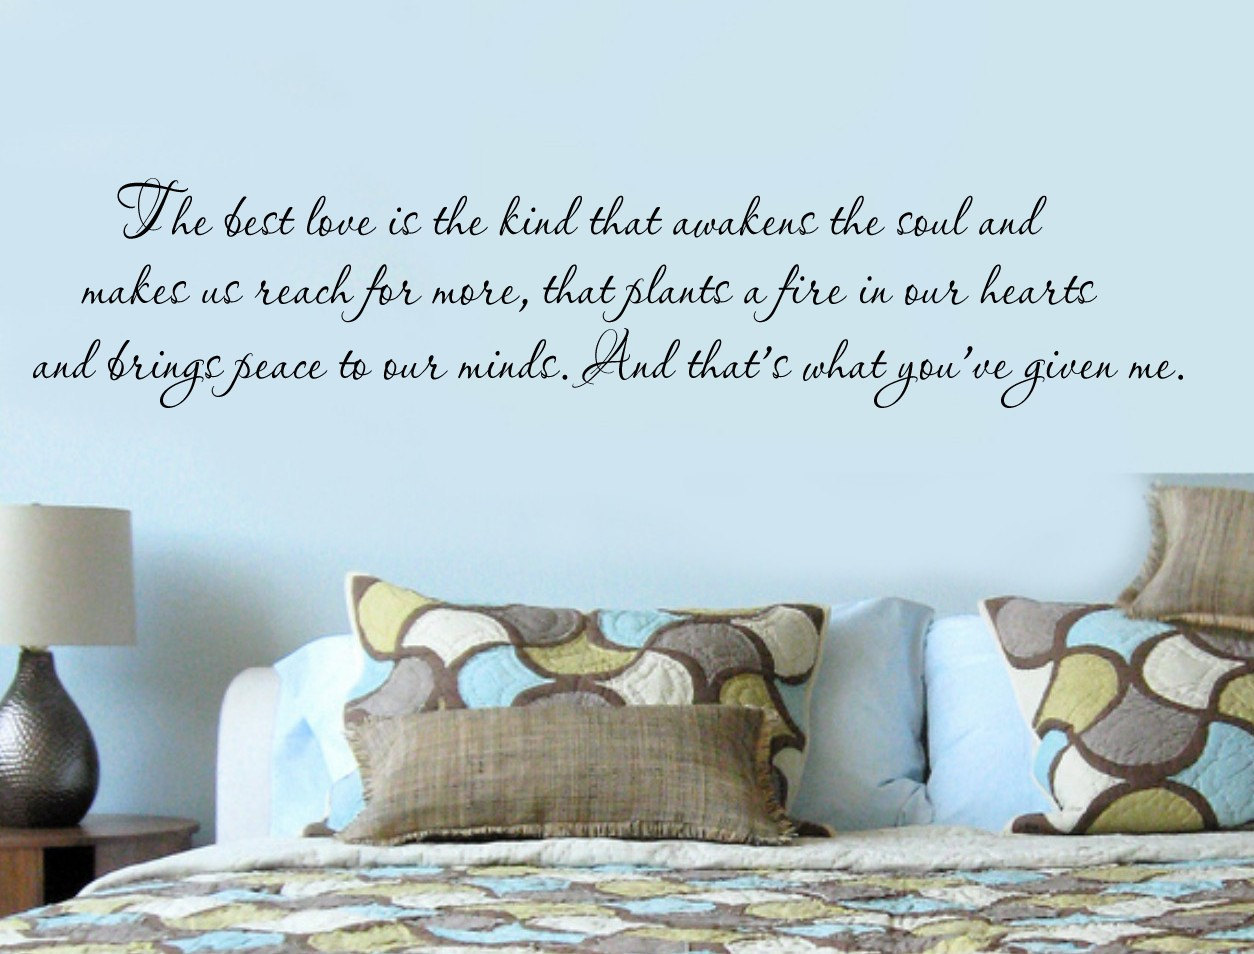 The Notebook Quote Pictures, Photos, and Images for ... |The Notebook Quotes Facebook Covers